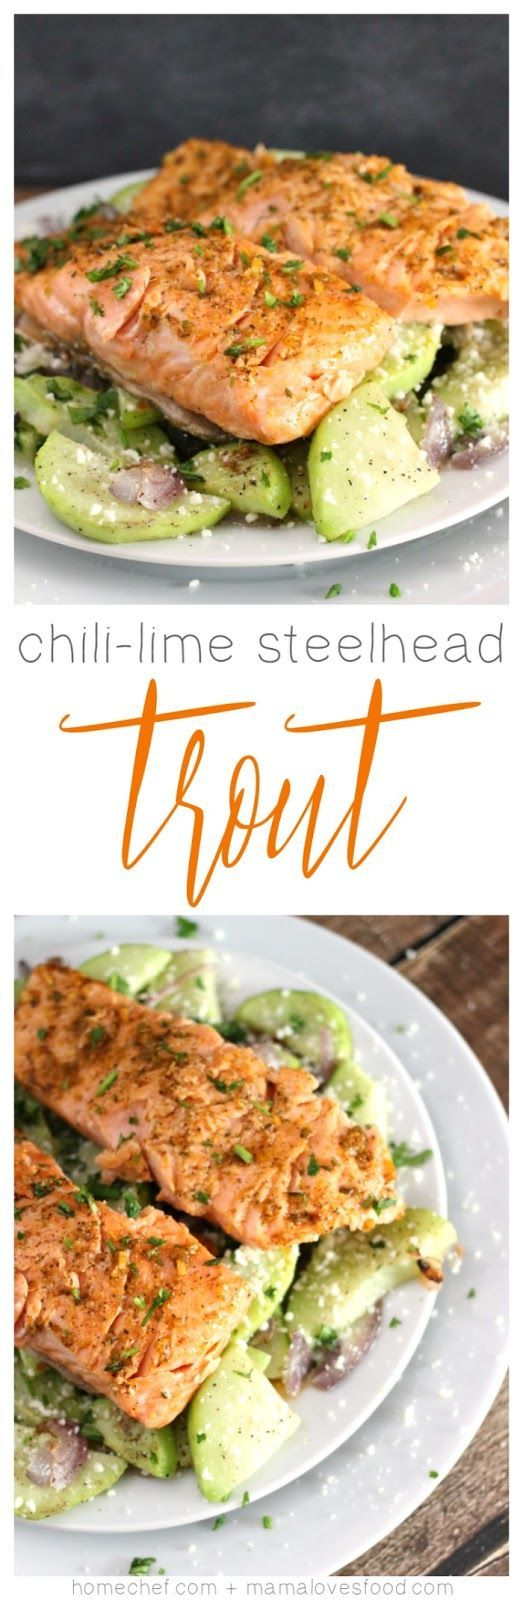 ... Trout Recipes on Pinterest | Rainbow Trout Recipes, Baked Trout and